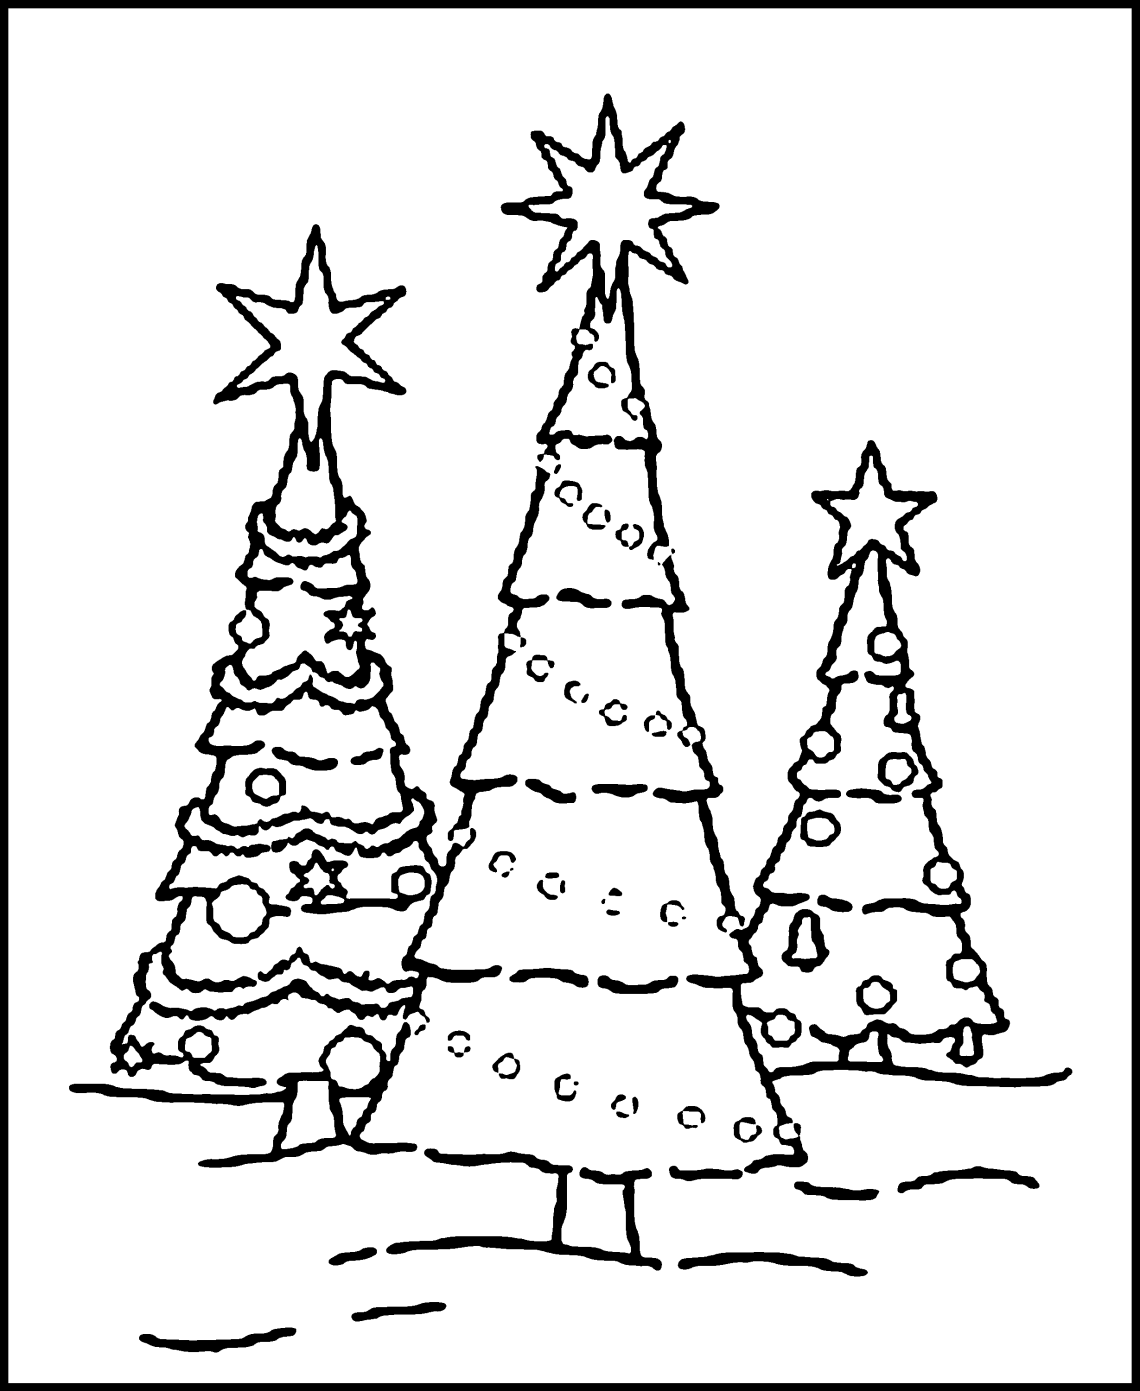 Free Printable Christmas Tree Coloring Pages For Kids | christmas tree coloring pages